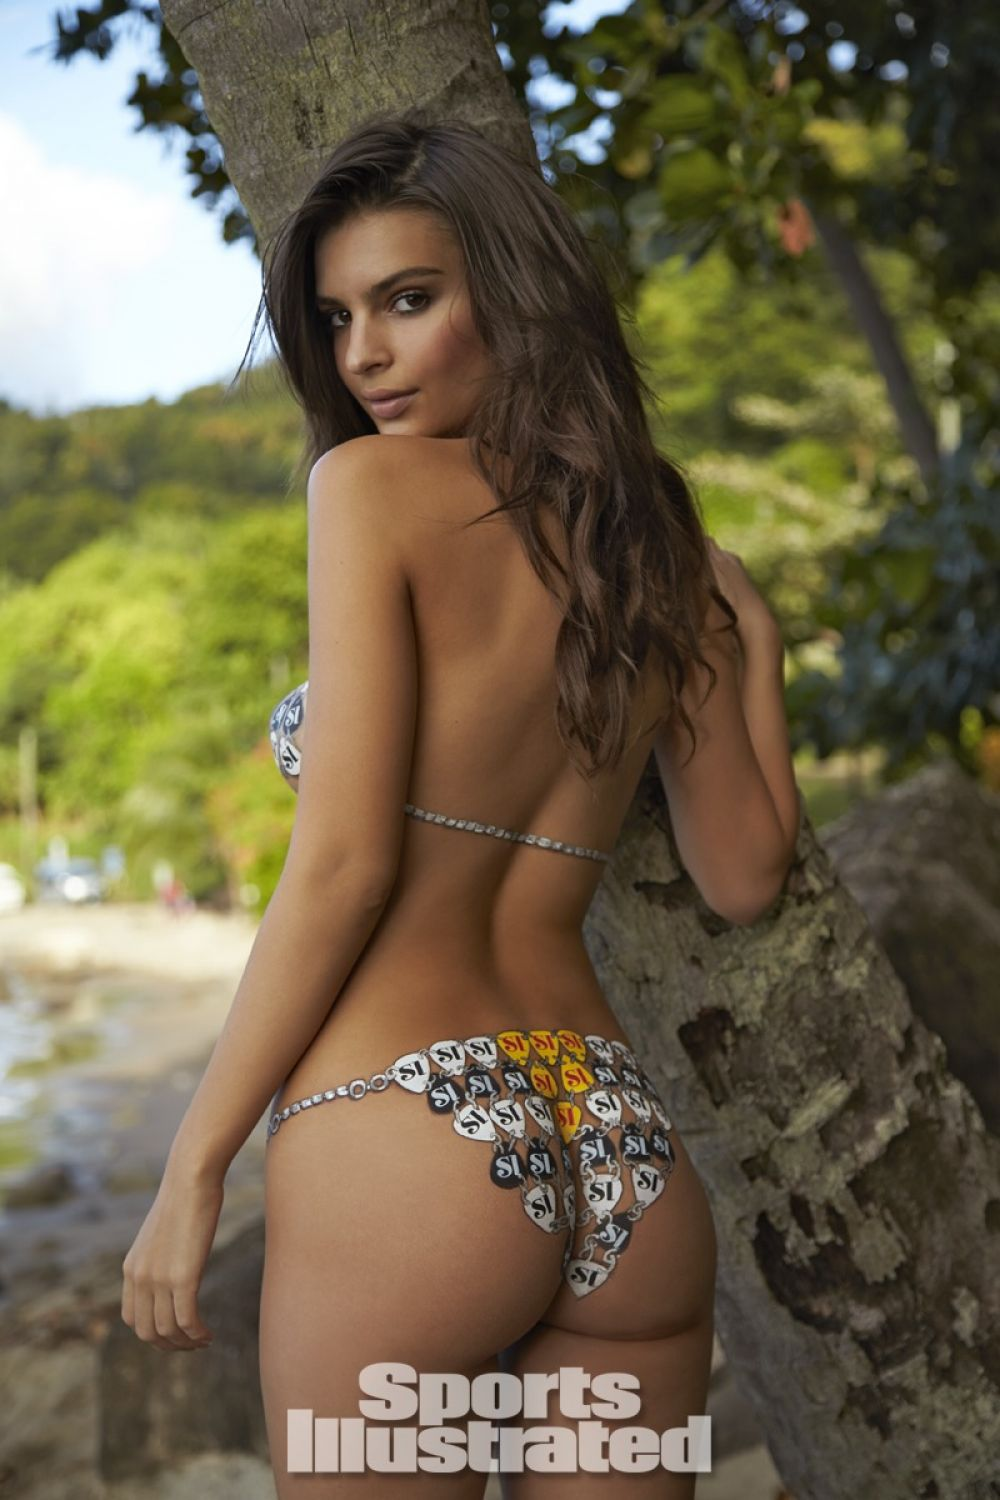 emily-ratajkowski-in-sports-illustrated-2014-swimsuit-issue_15.jpg - 151.95 KB